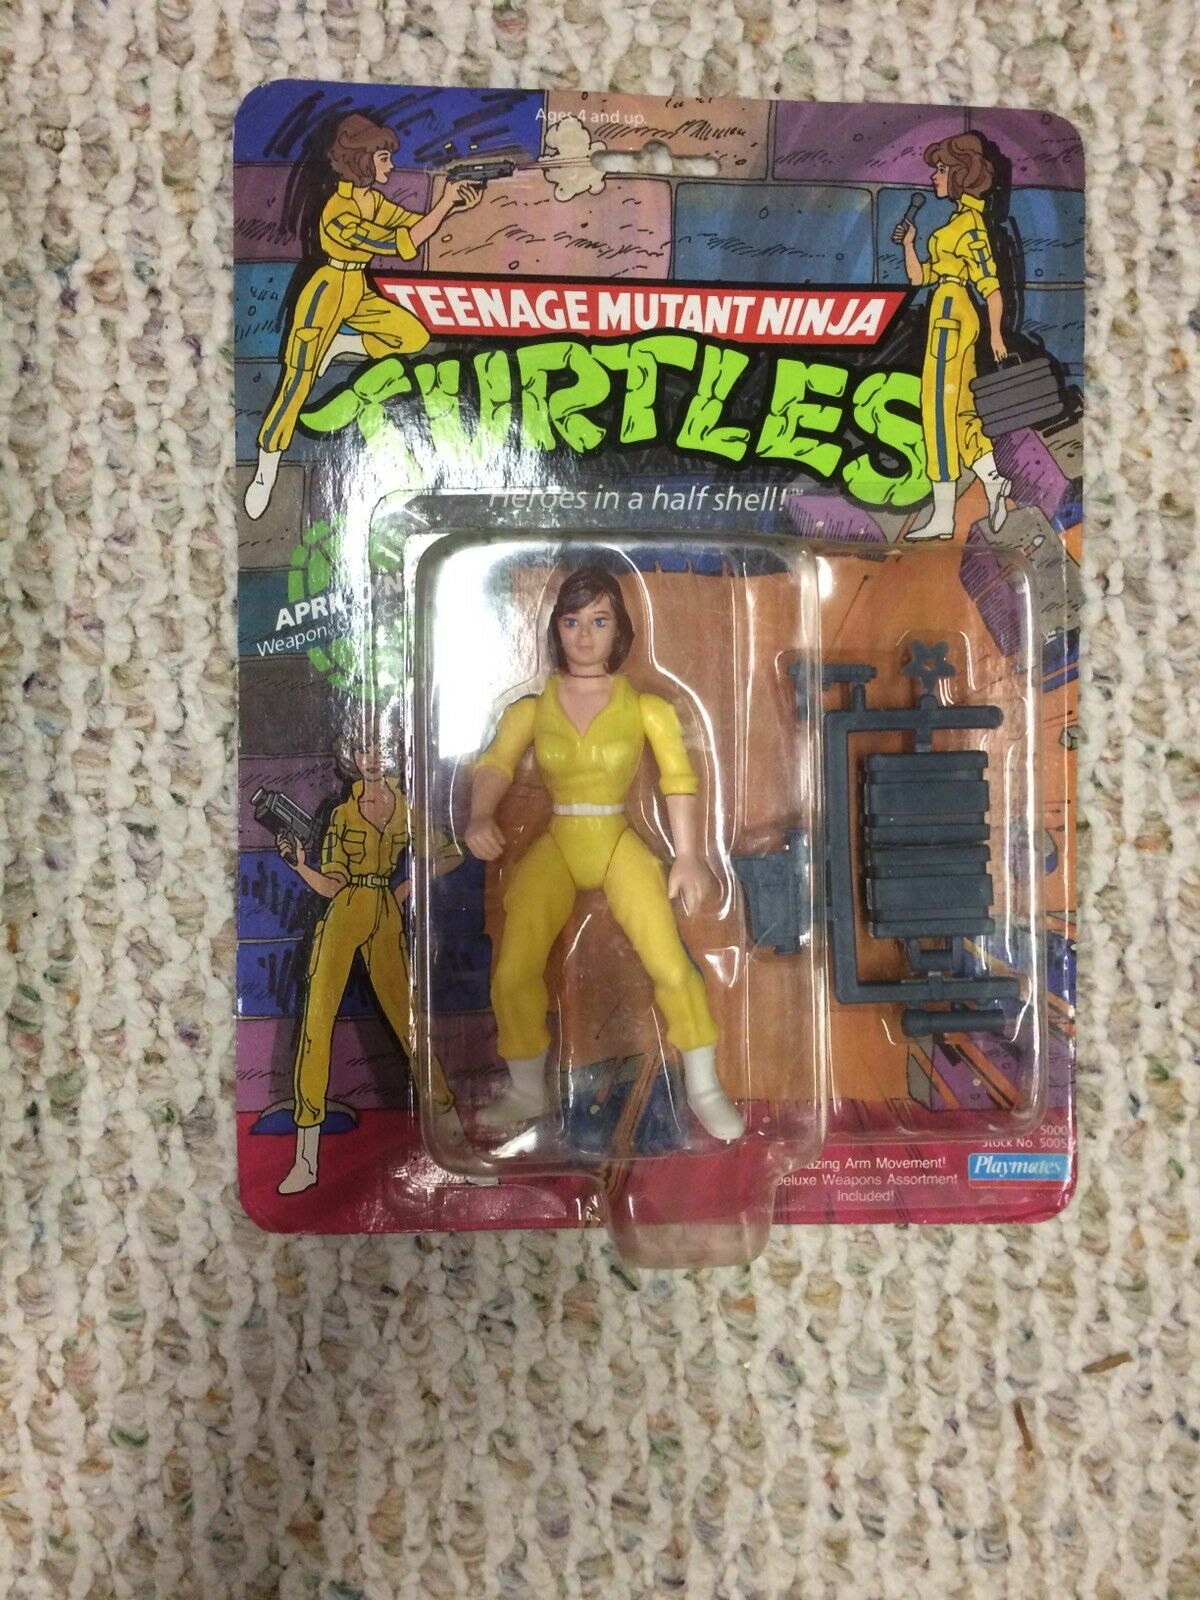 Tmnt april o 'neil actionfigur moc versiegelt.